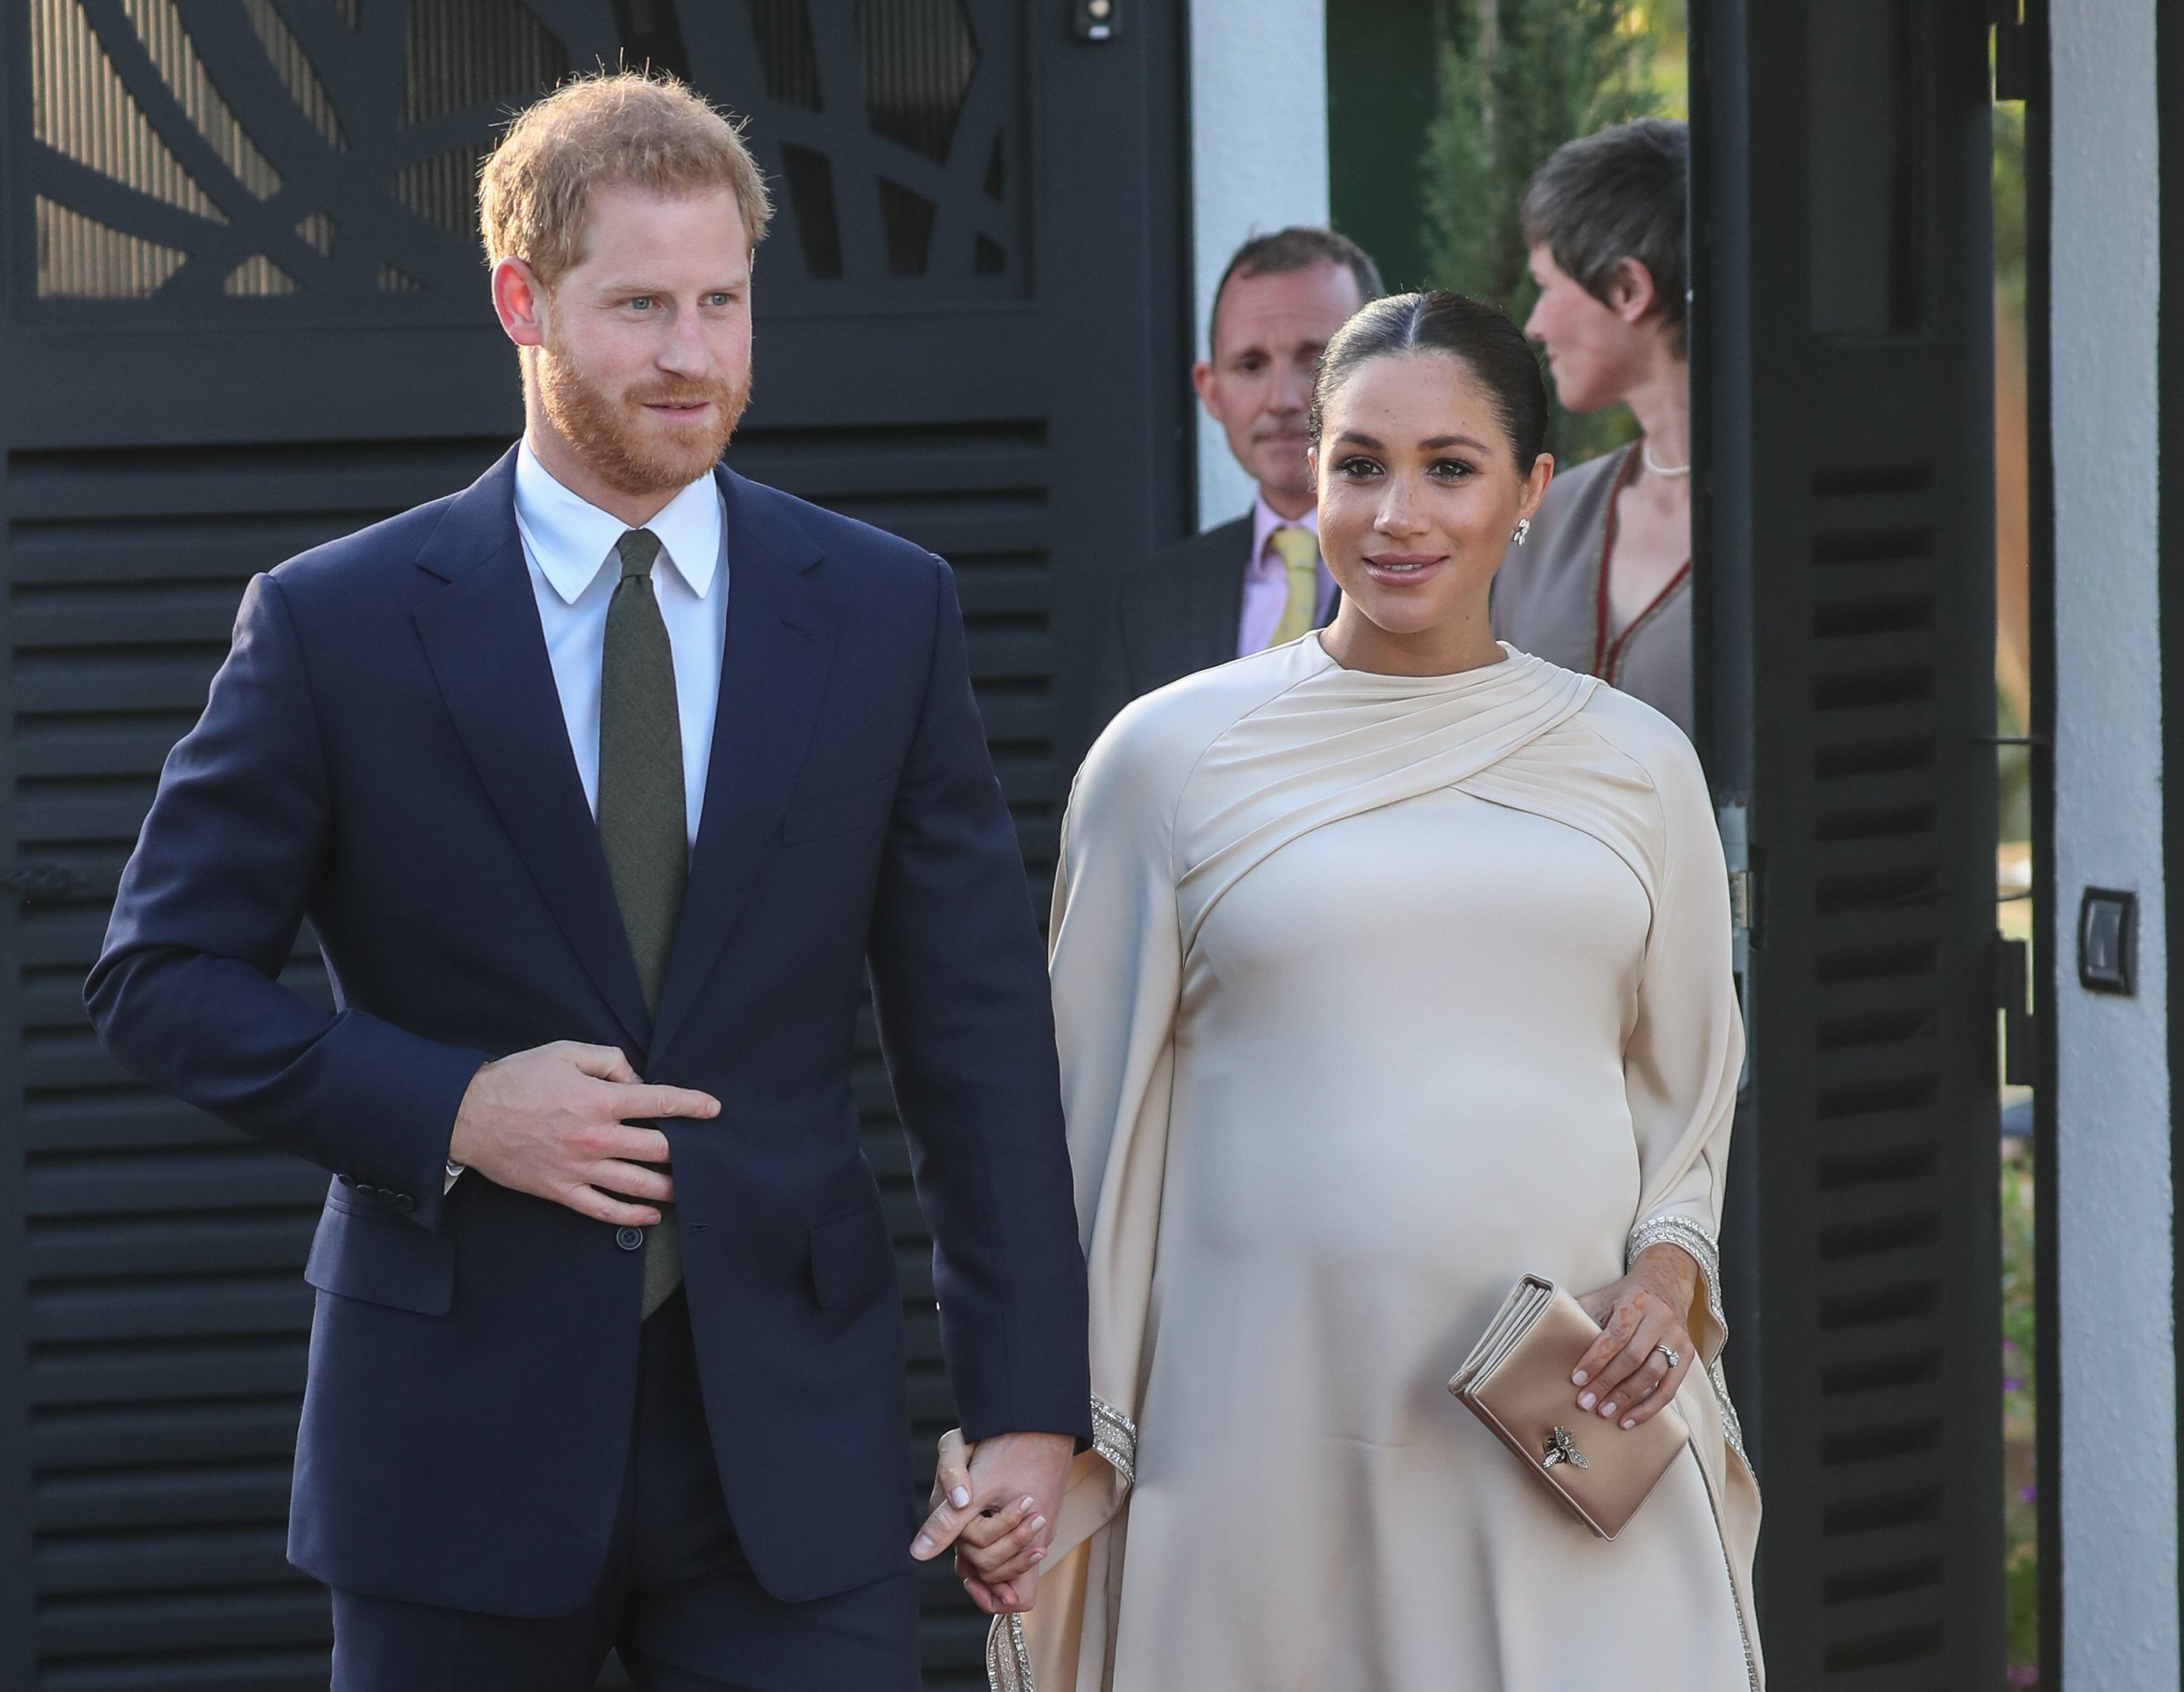 Everything we know about Meghan Markle's baby plans as her spring due date approaches